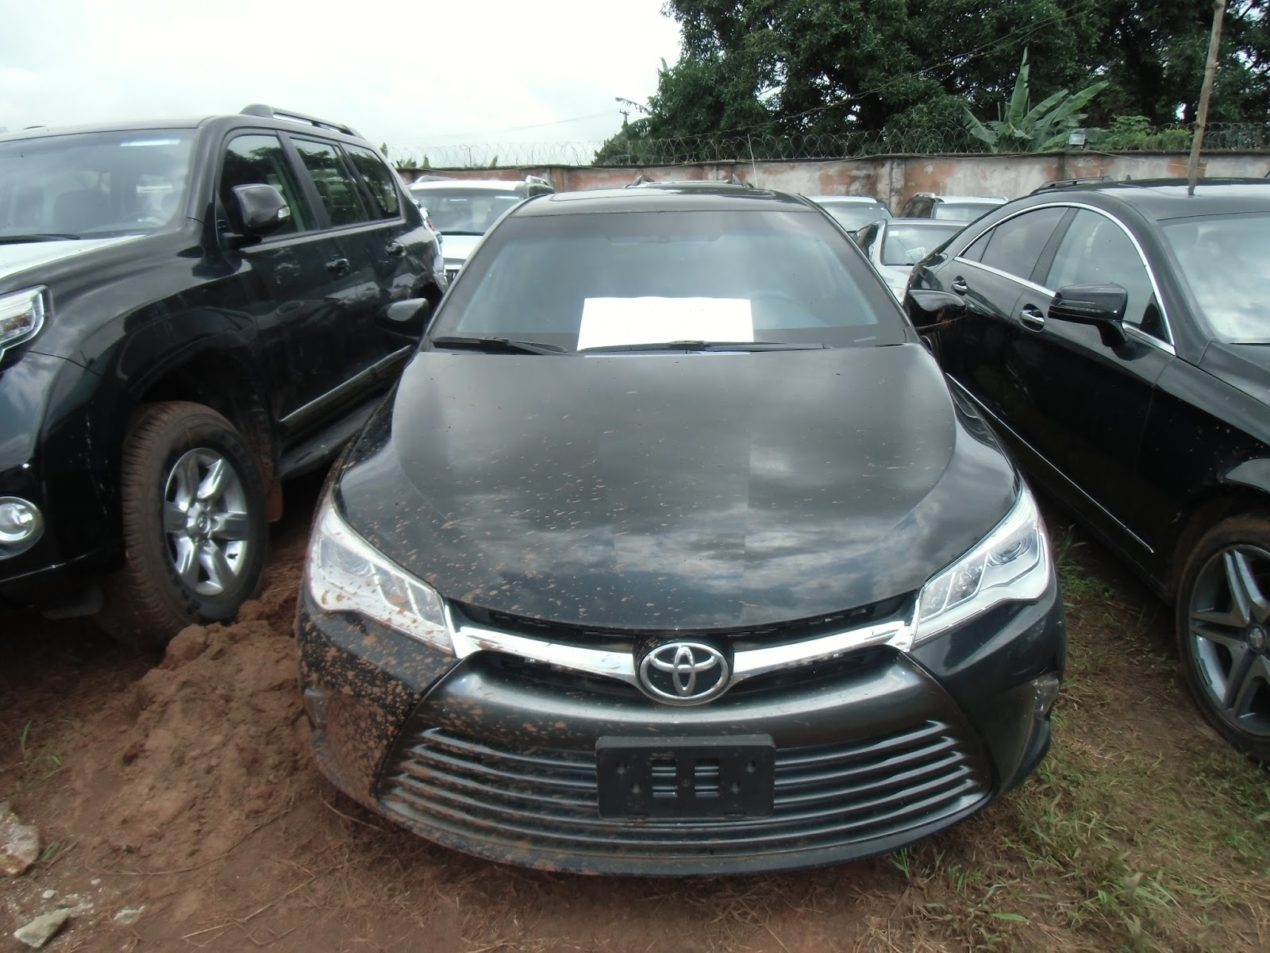 Customs Impound Bullet Proof Cars